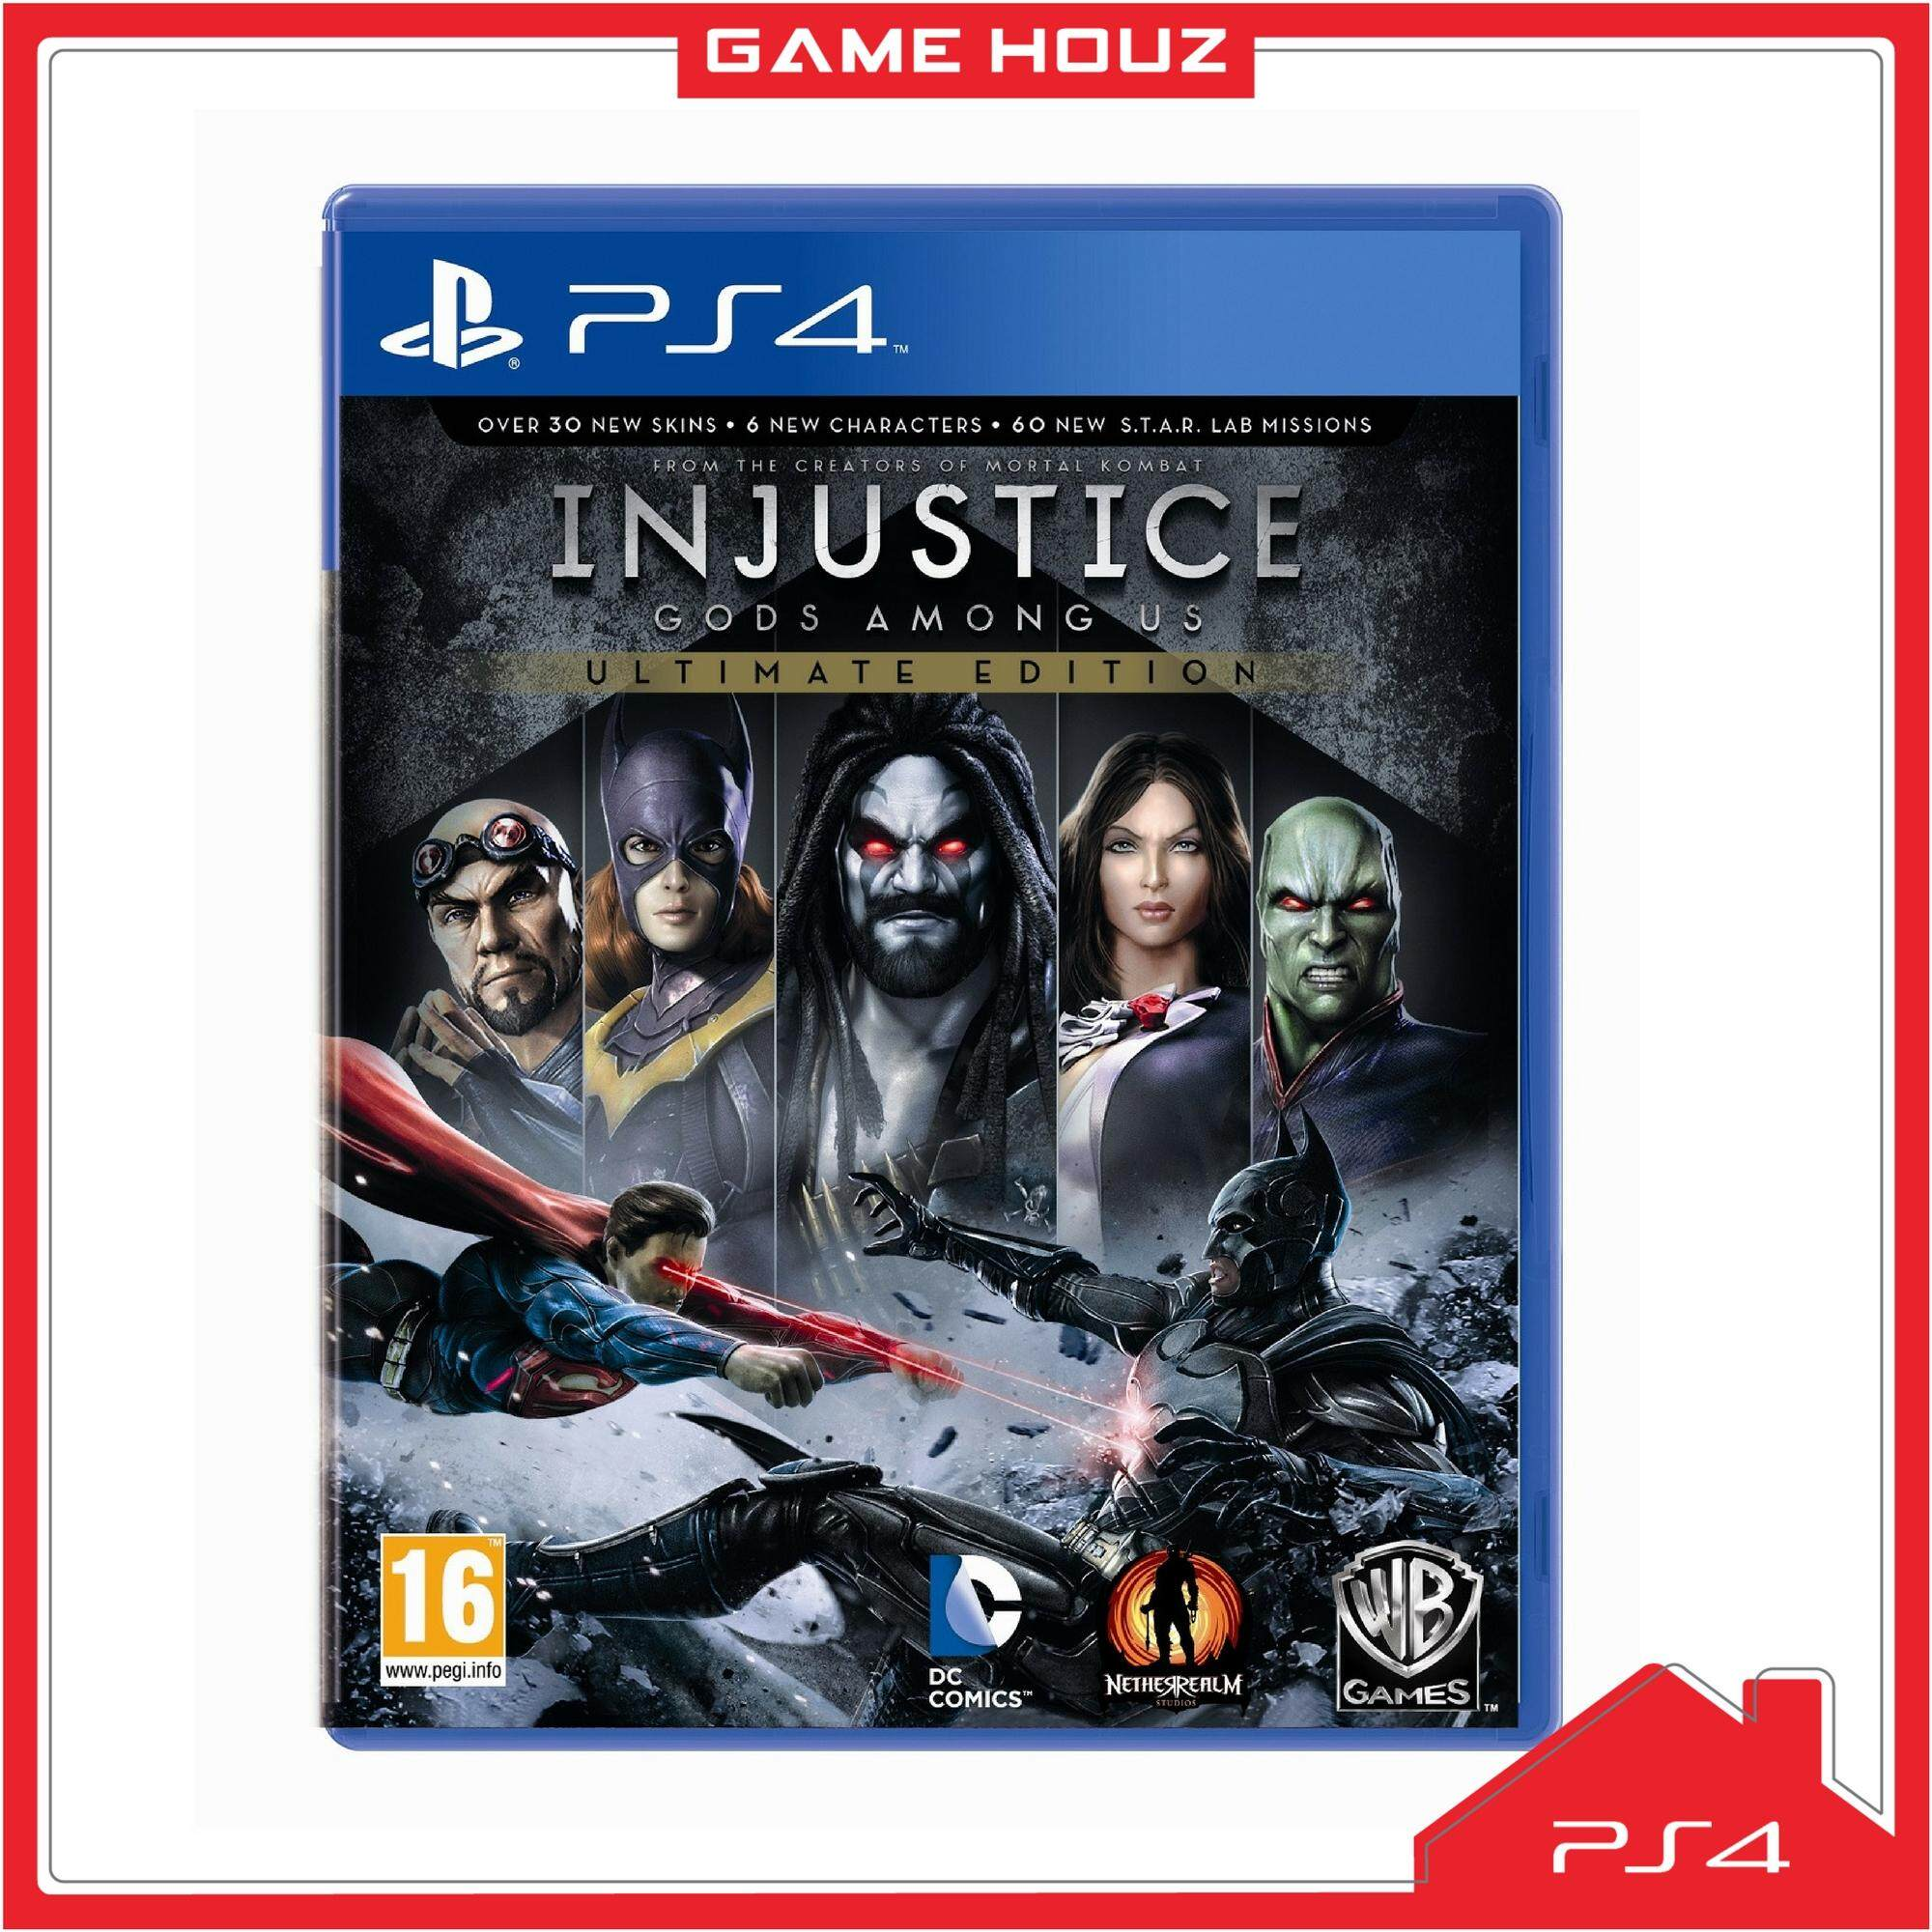 Sell Ps4 Injustice God Cheapest Best Quality My Store Sony Playstation 2 R3 Myr 109